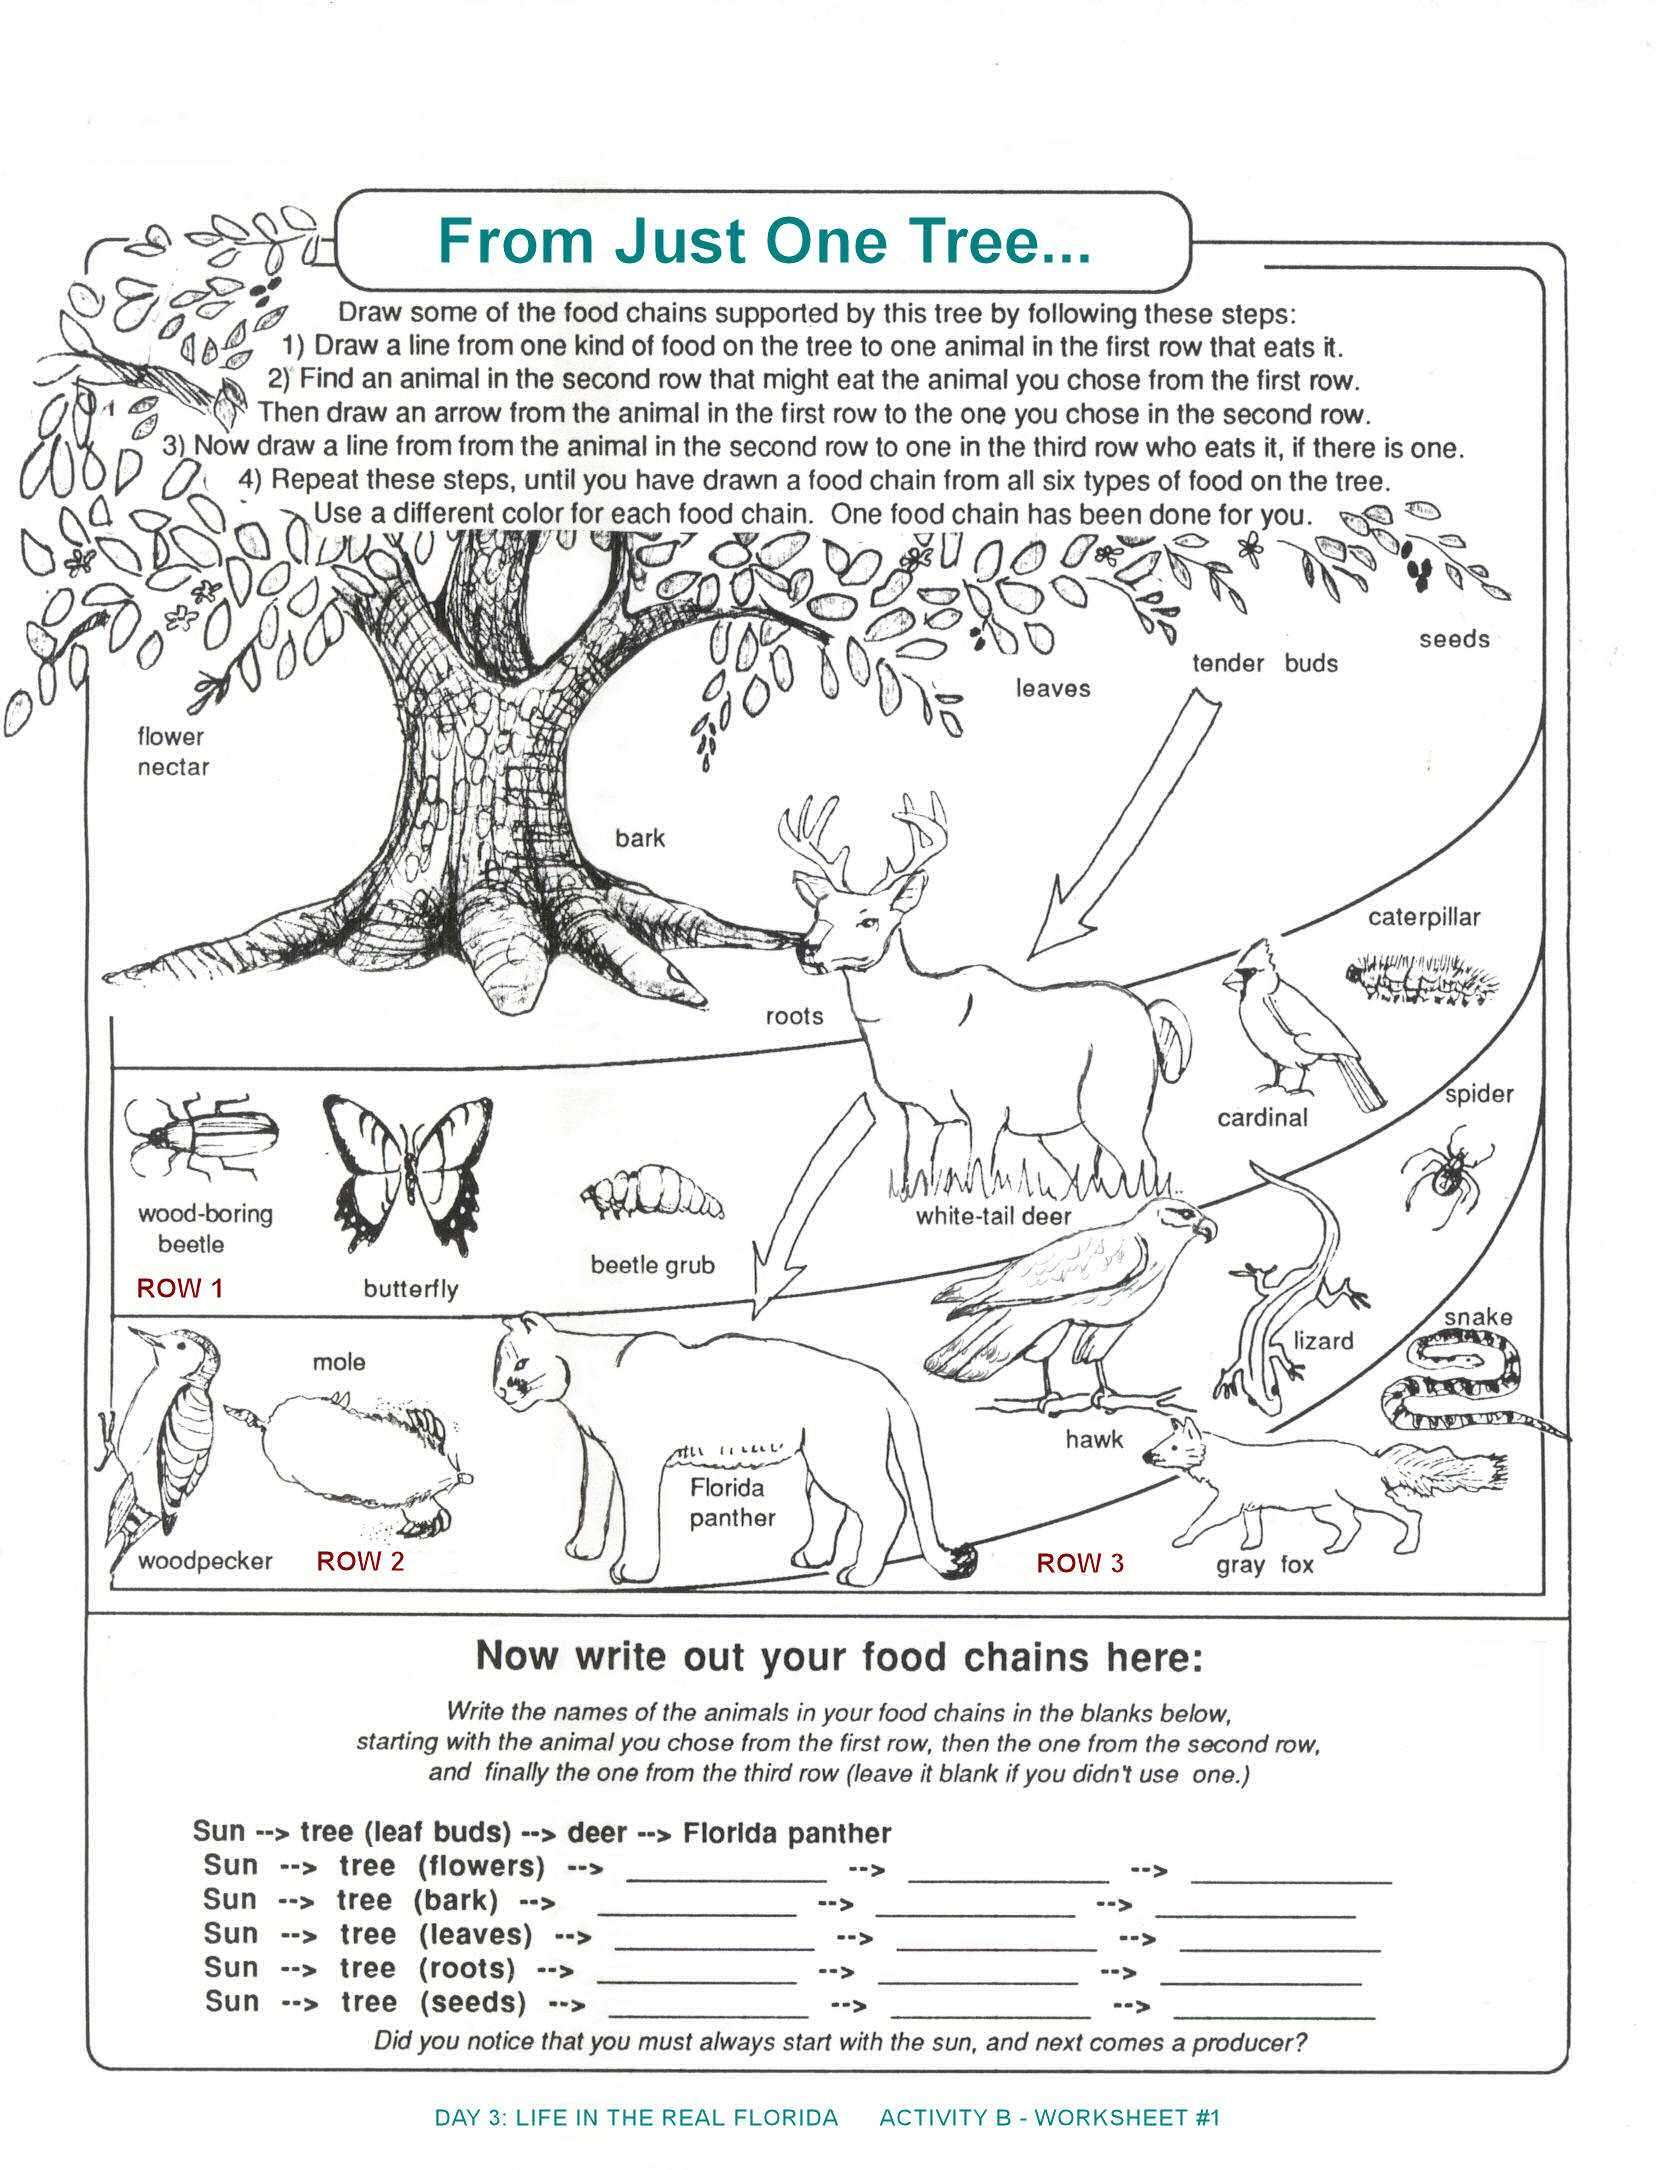 Food Chains and Webs Worksheet together with Food Webs and Food Chains Worksheet Inspirational 58 Best Food